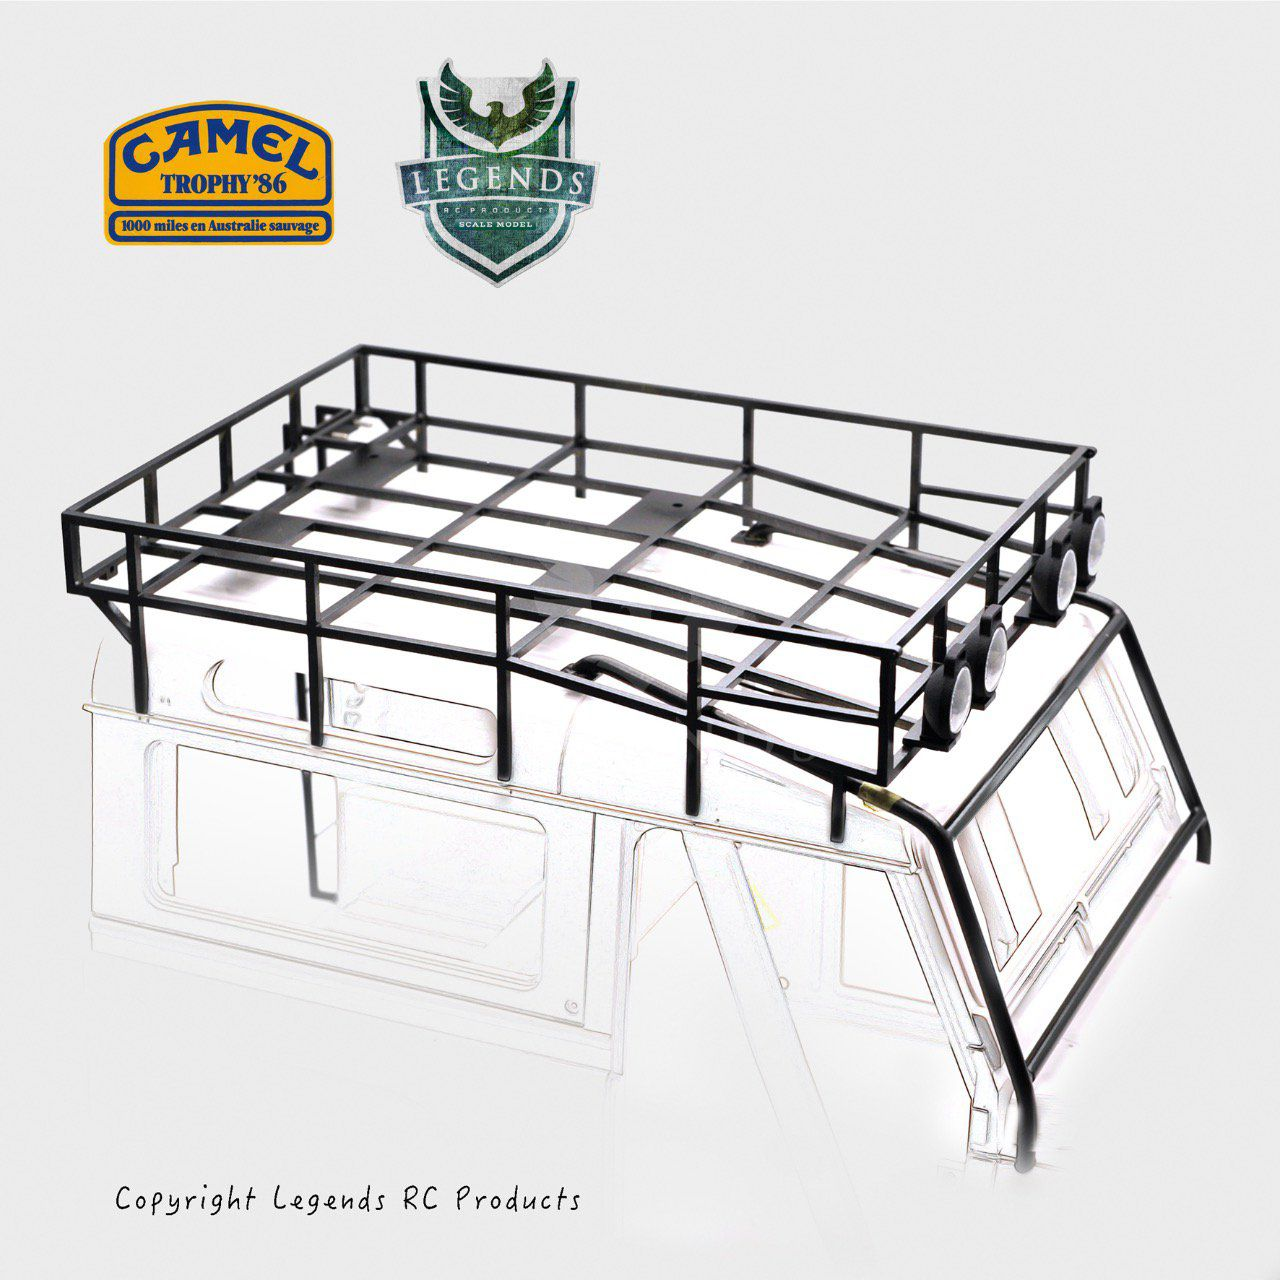 90OPN-1986 - Camel Trophy (1986) Top Roof Rack set for D90 Open Door Version (Team Raffee)